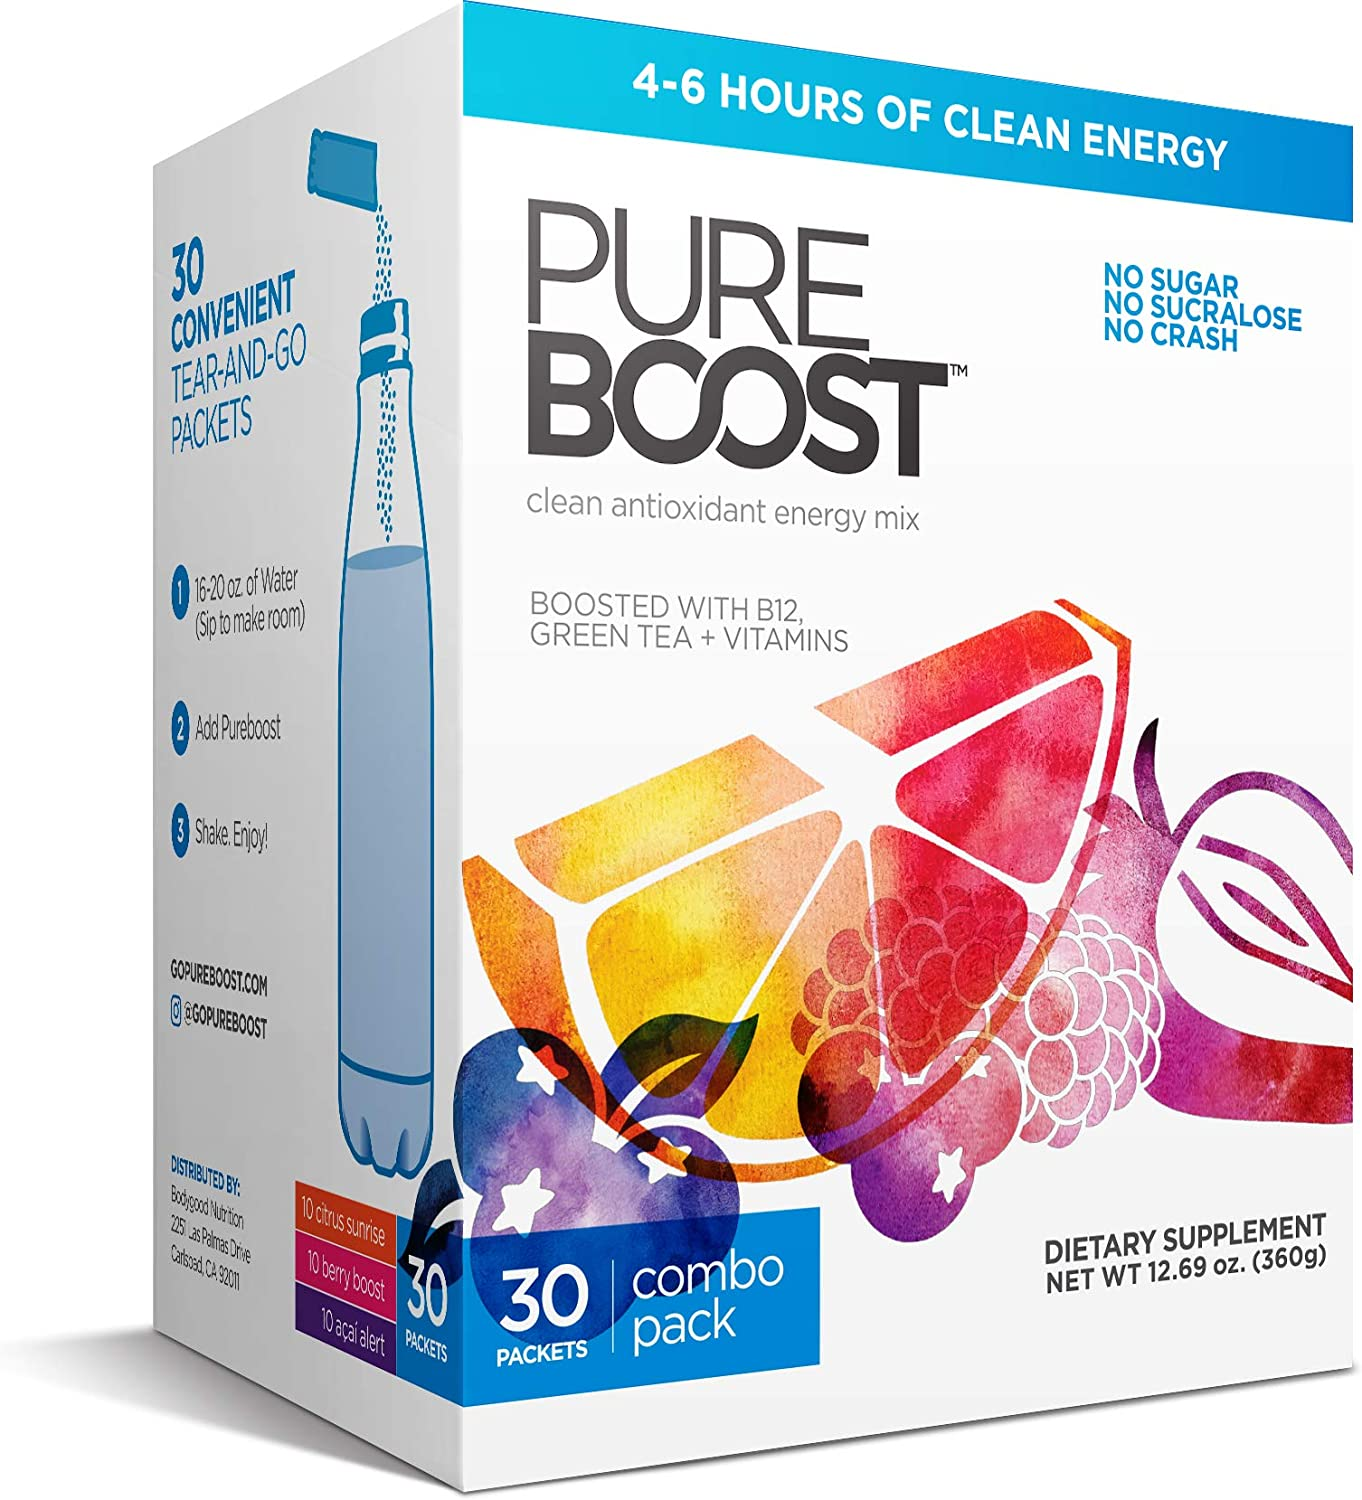 Pureboost Clean Energy Drink Mix + Immune System Support. Sugar-Free Energy with B12, Multivitamins, Antioxidants, Electrolytes (Combo Pack, 30 Stick Packs): Health & Personal Care